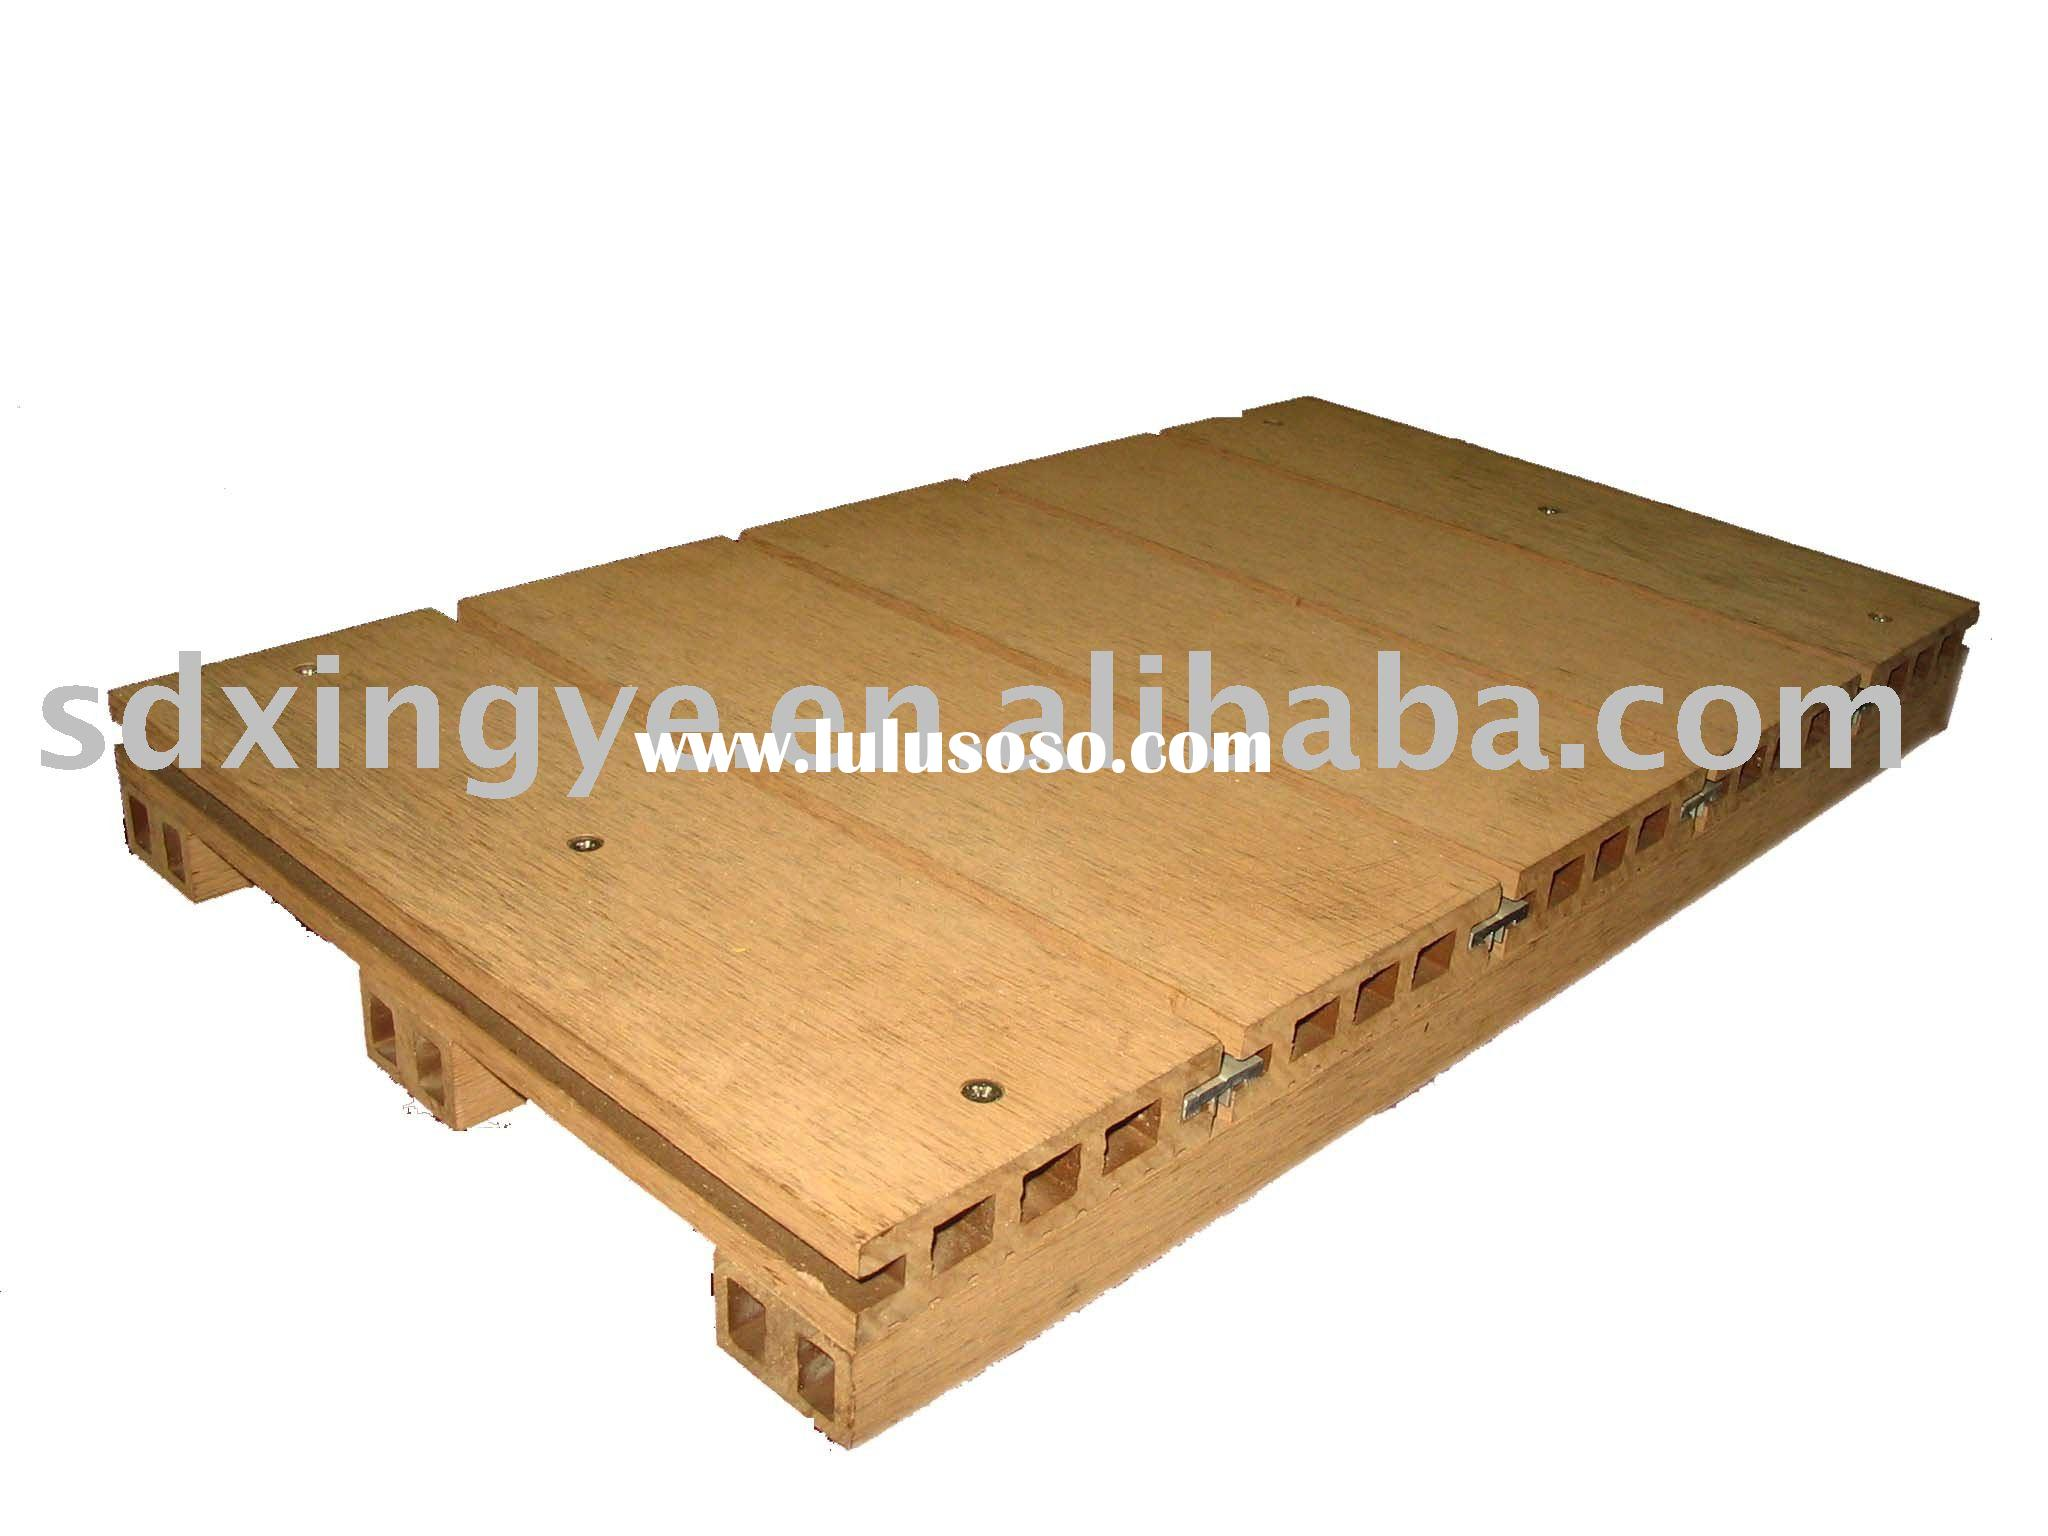 decking material,floor decorative